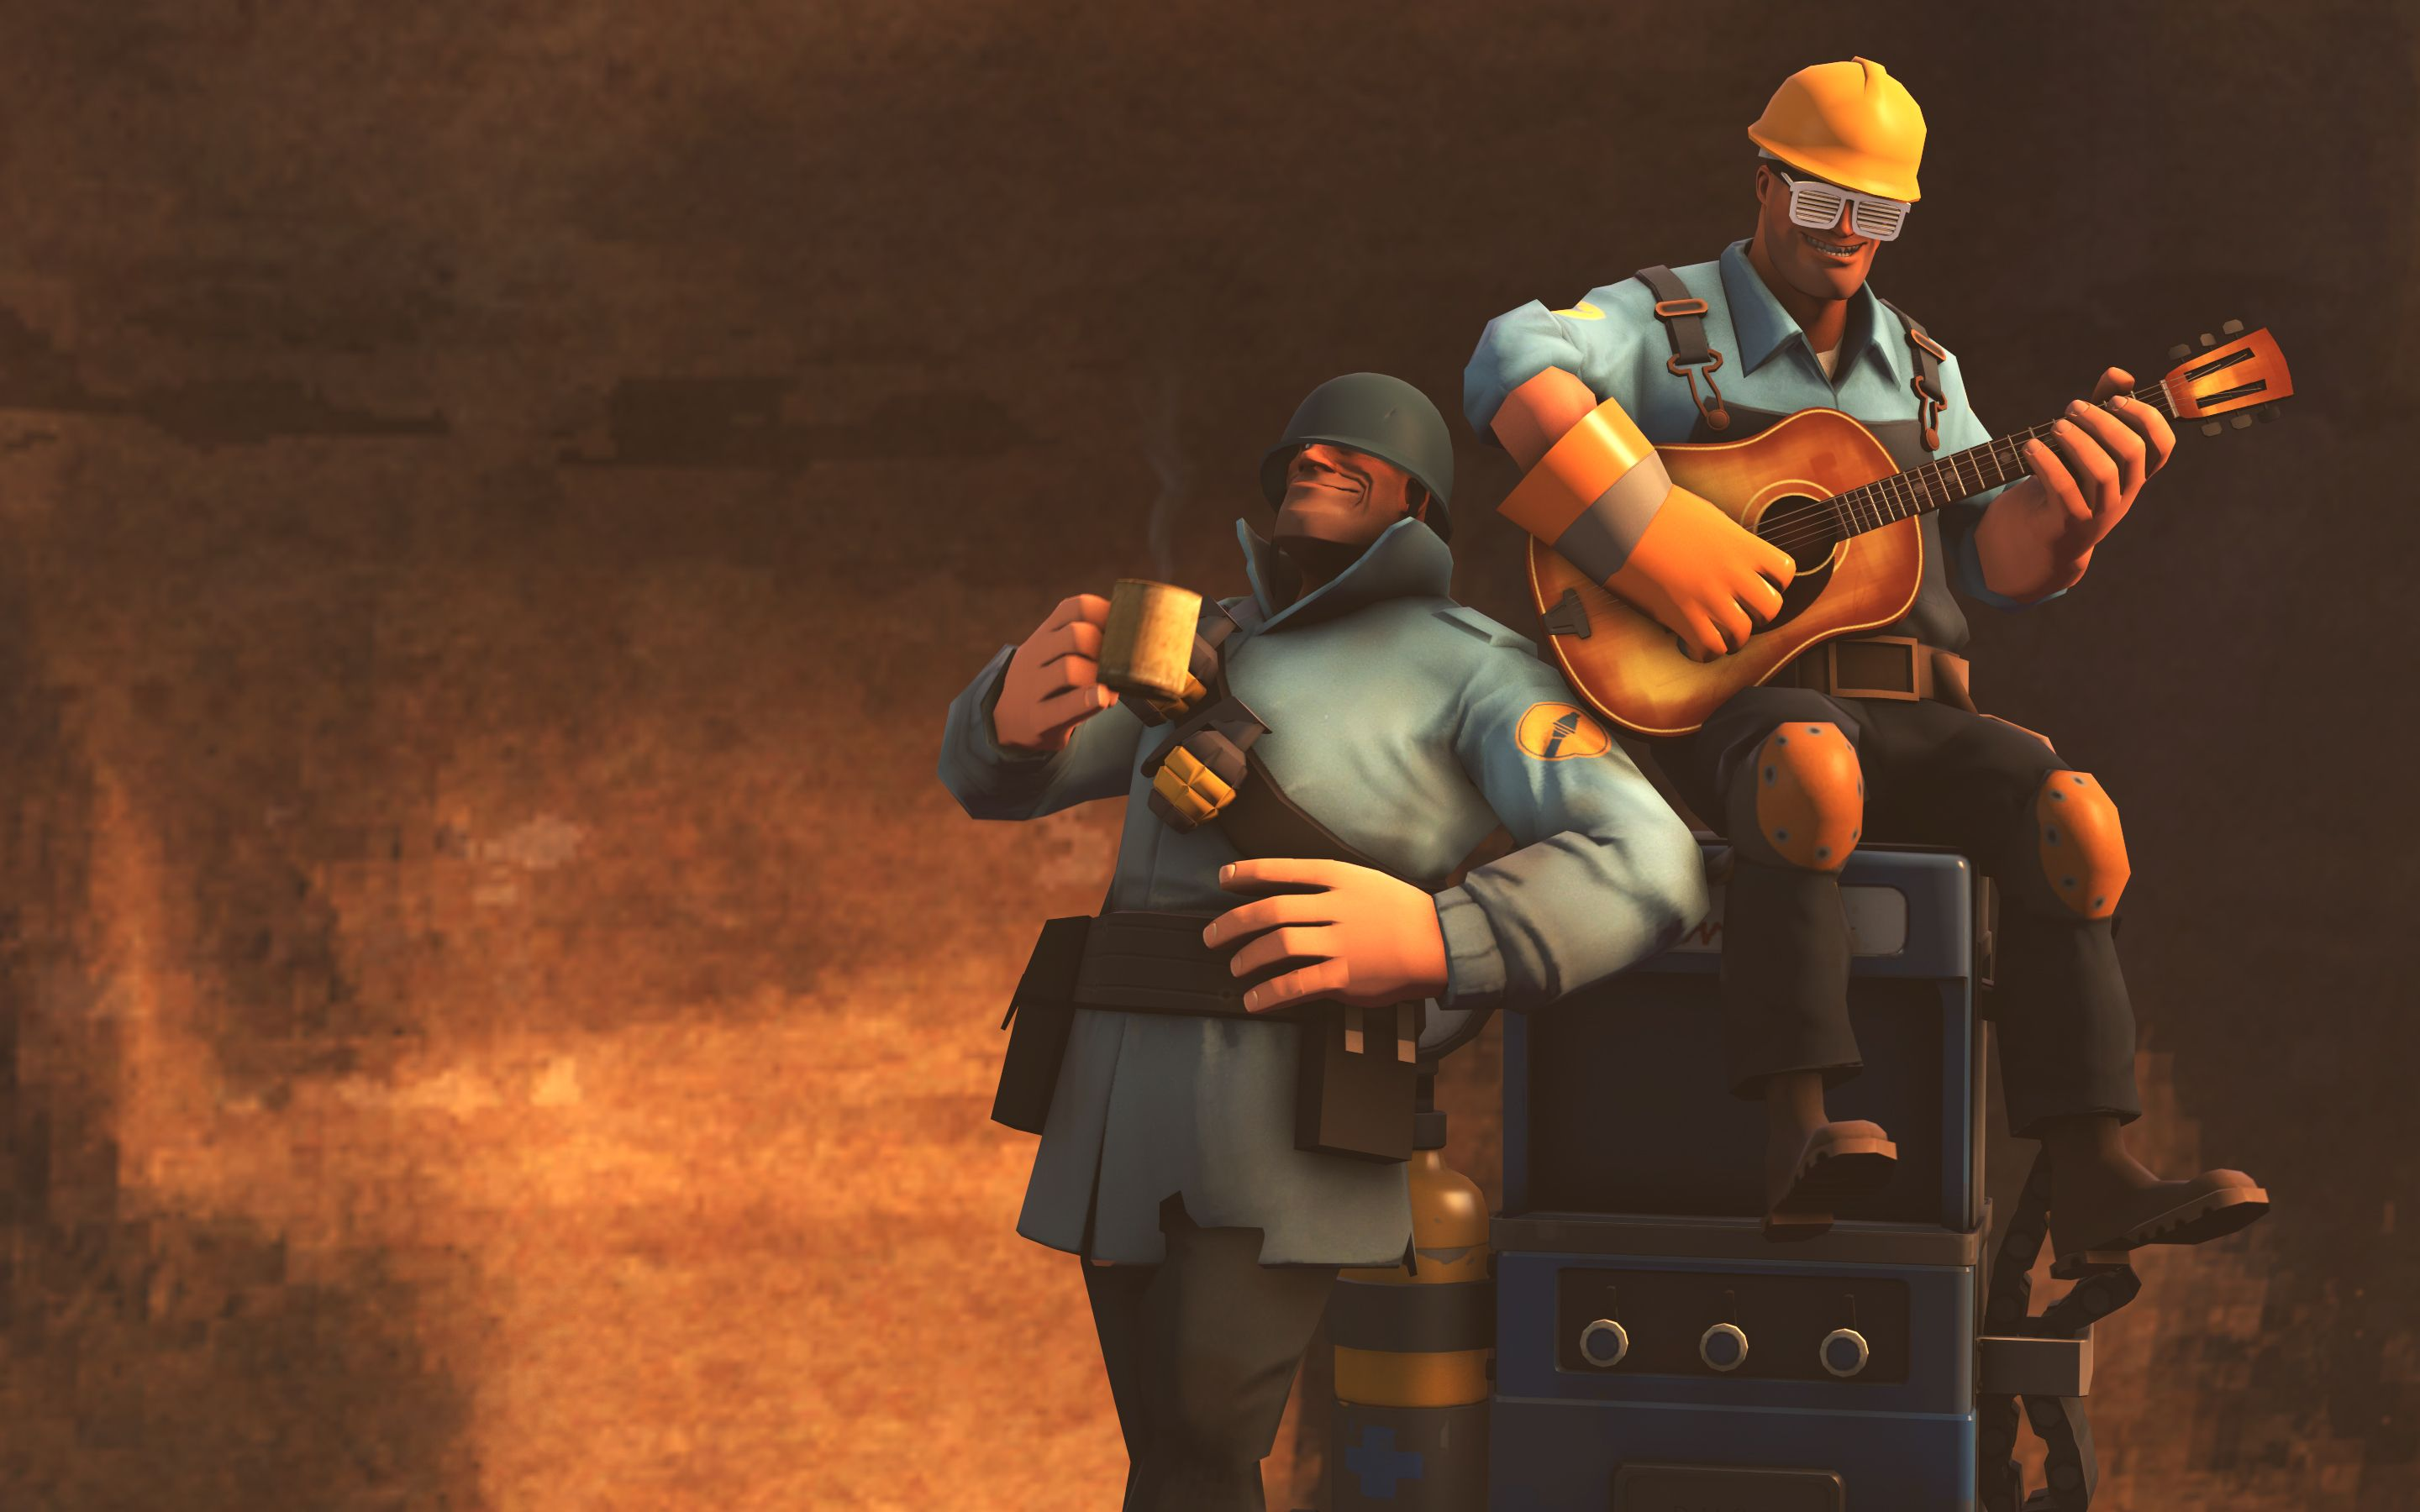 Free Team Fortress 2 Wallpapers Wallpapers Backgrounds Images Art Photos Team Fortress 2 Team Fortress Team Fortress 2 Soldier